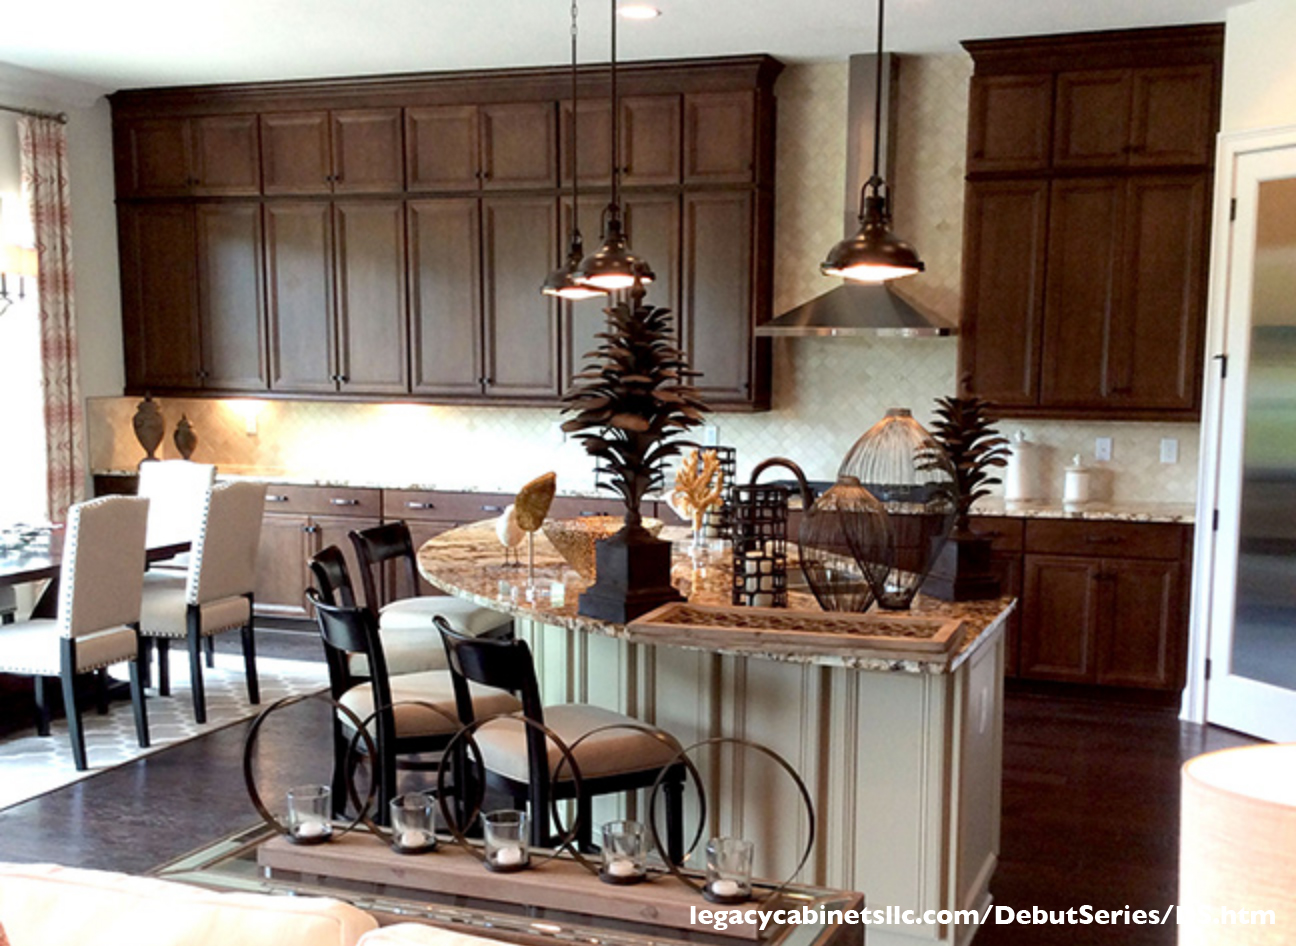 Debut Series by Legacy Cabinets - COAST TO COAST CABINETS